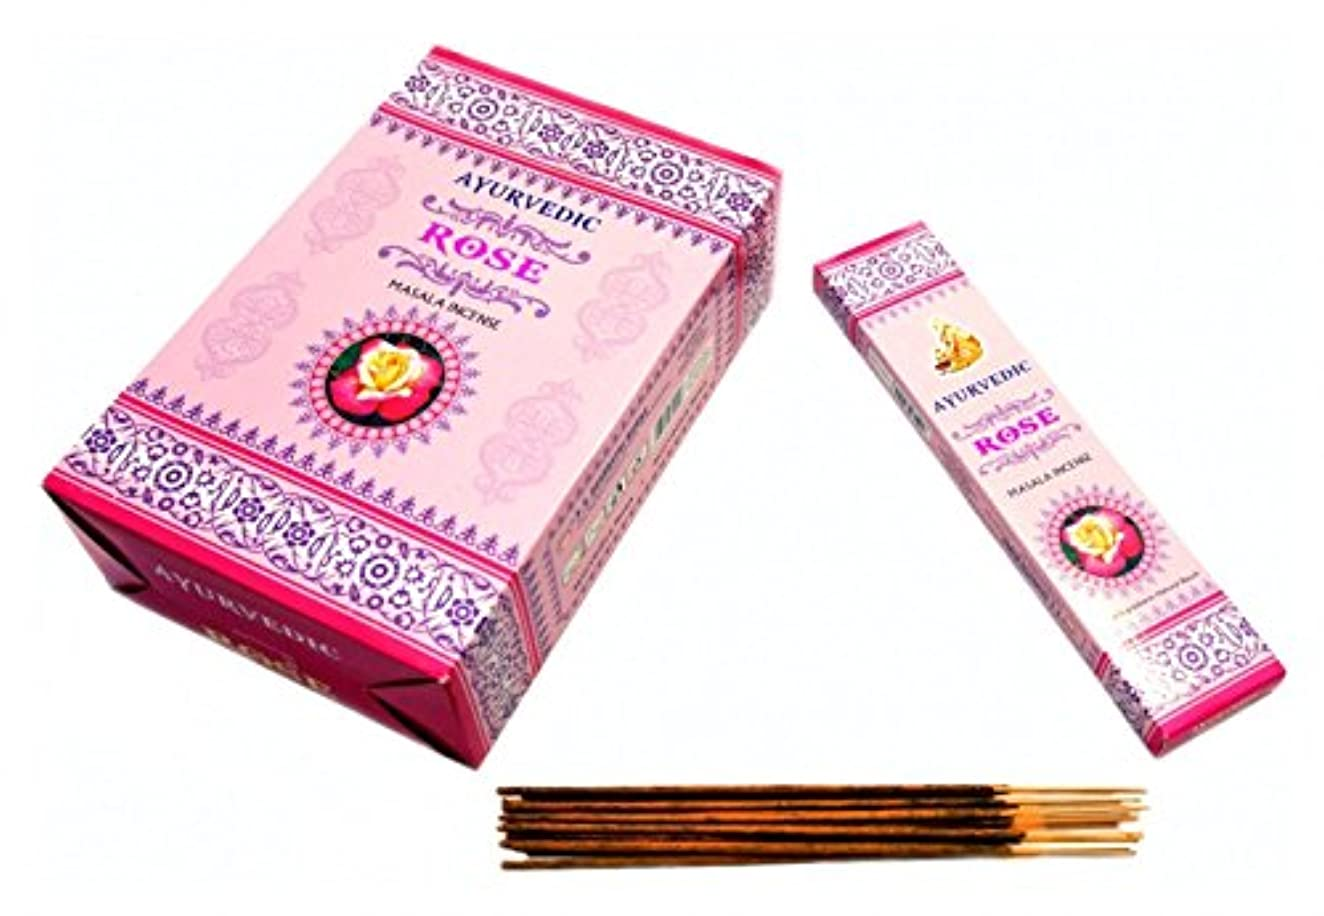 飼い慣らす忘れっぽいに渡ってAyurvedic Rose Masala Incense Sticks Agarbatti ( 12パックX 15 Sticks各)